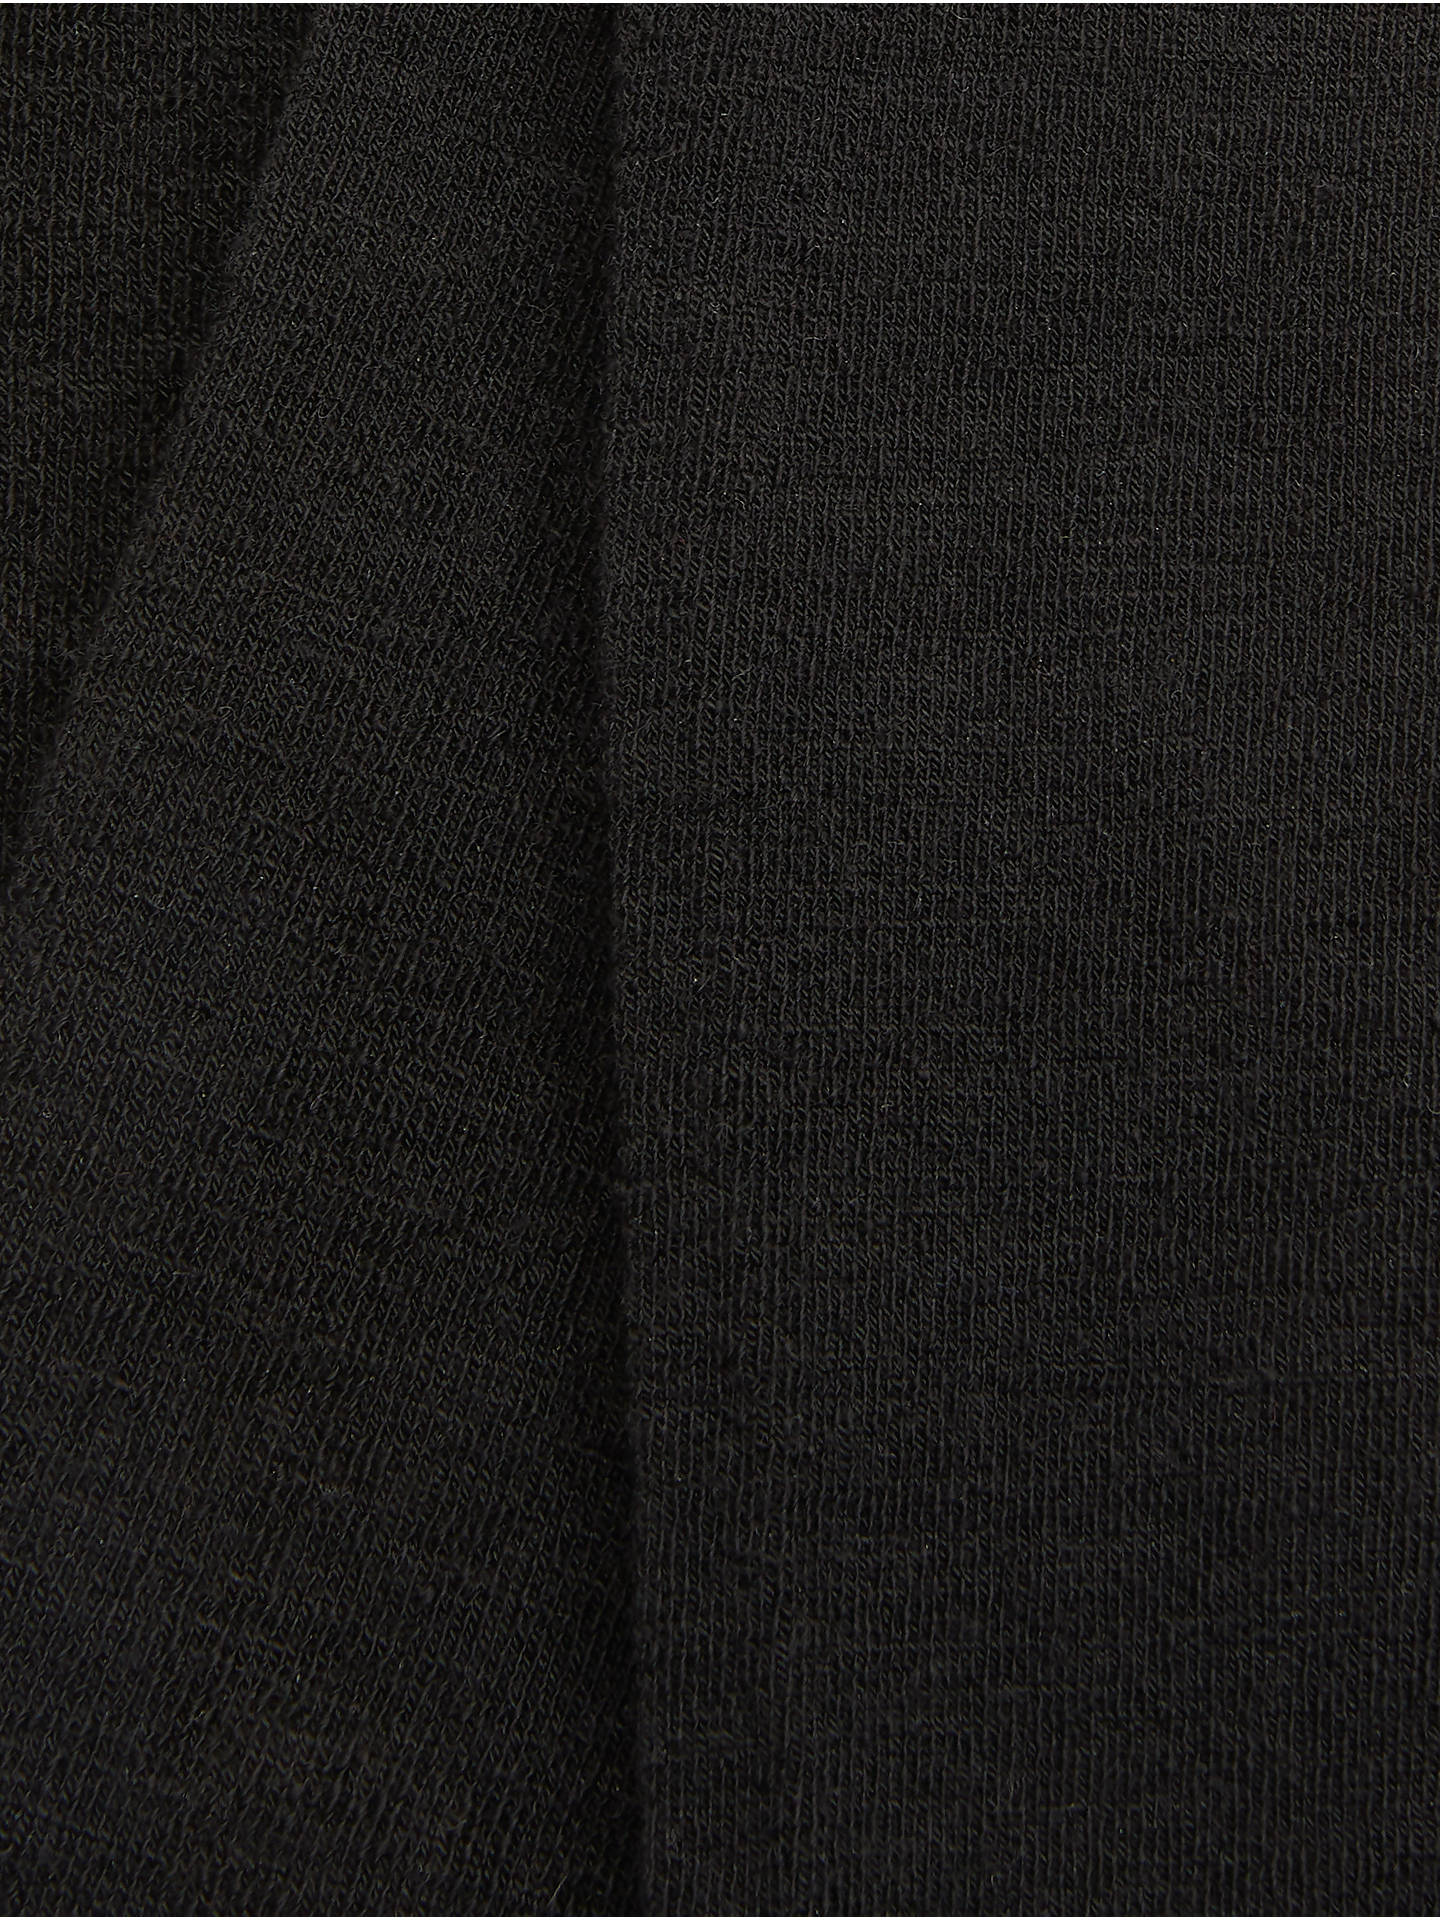 BuyJohn Lewis & Partners Extra Fine Wool Rich Flat Opaque Tights, Black, S Online at johnlewis.com